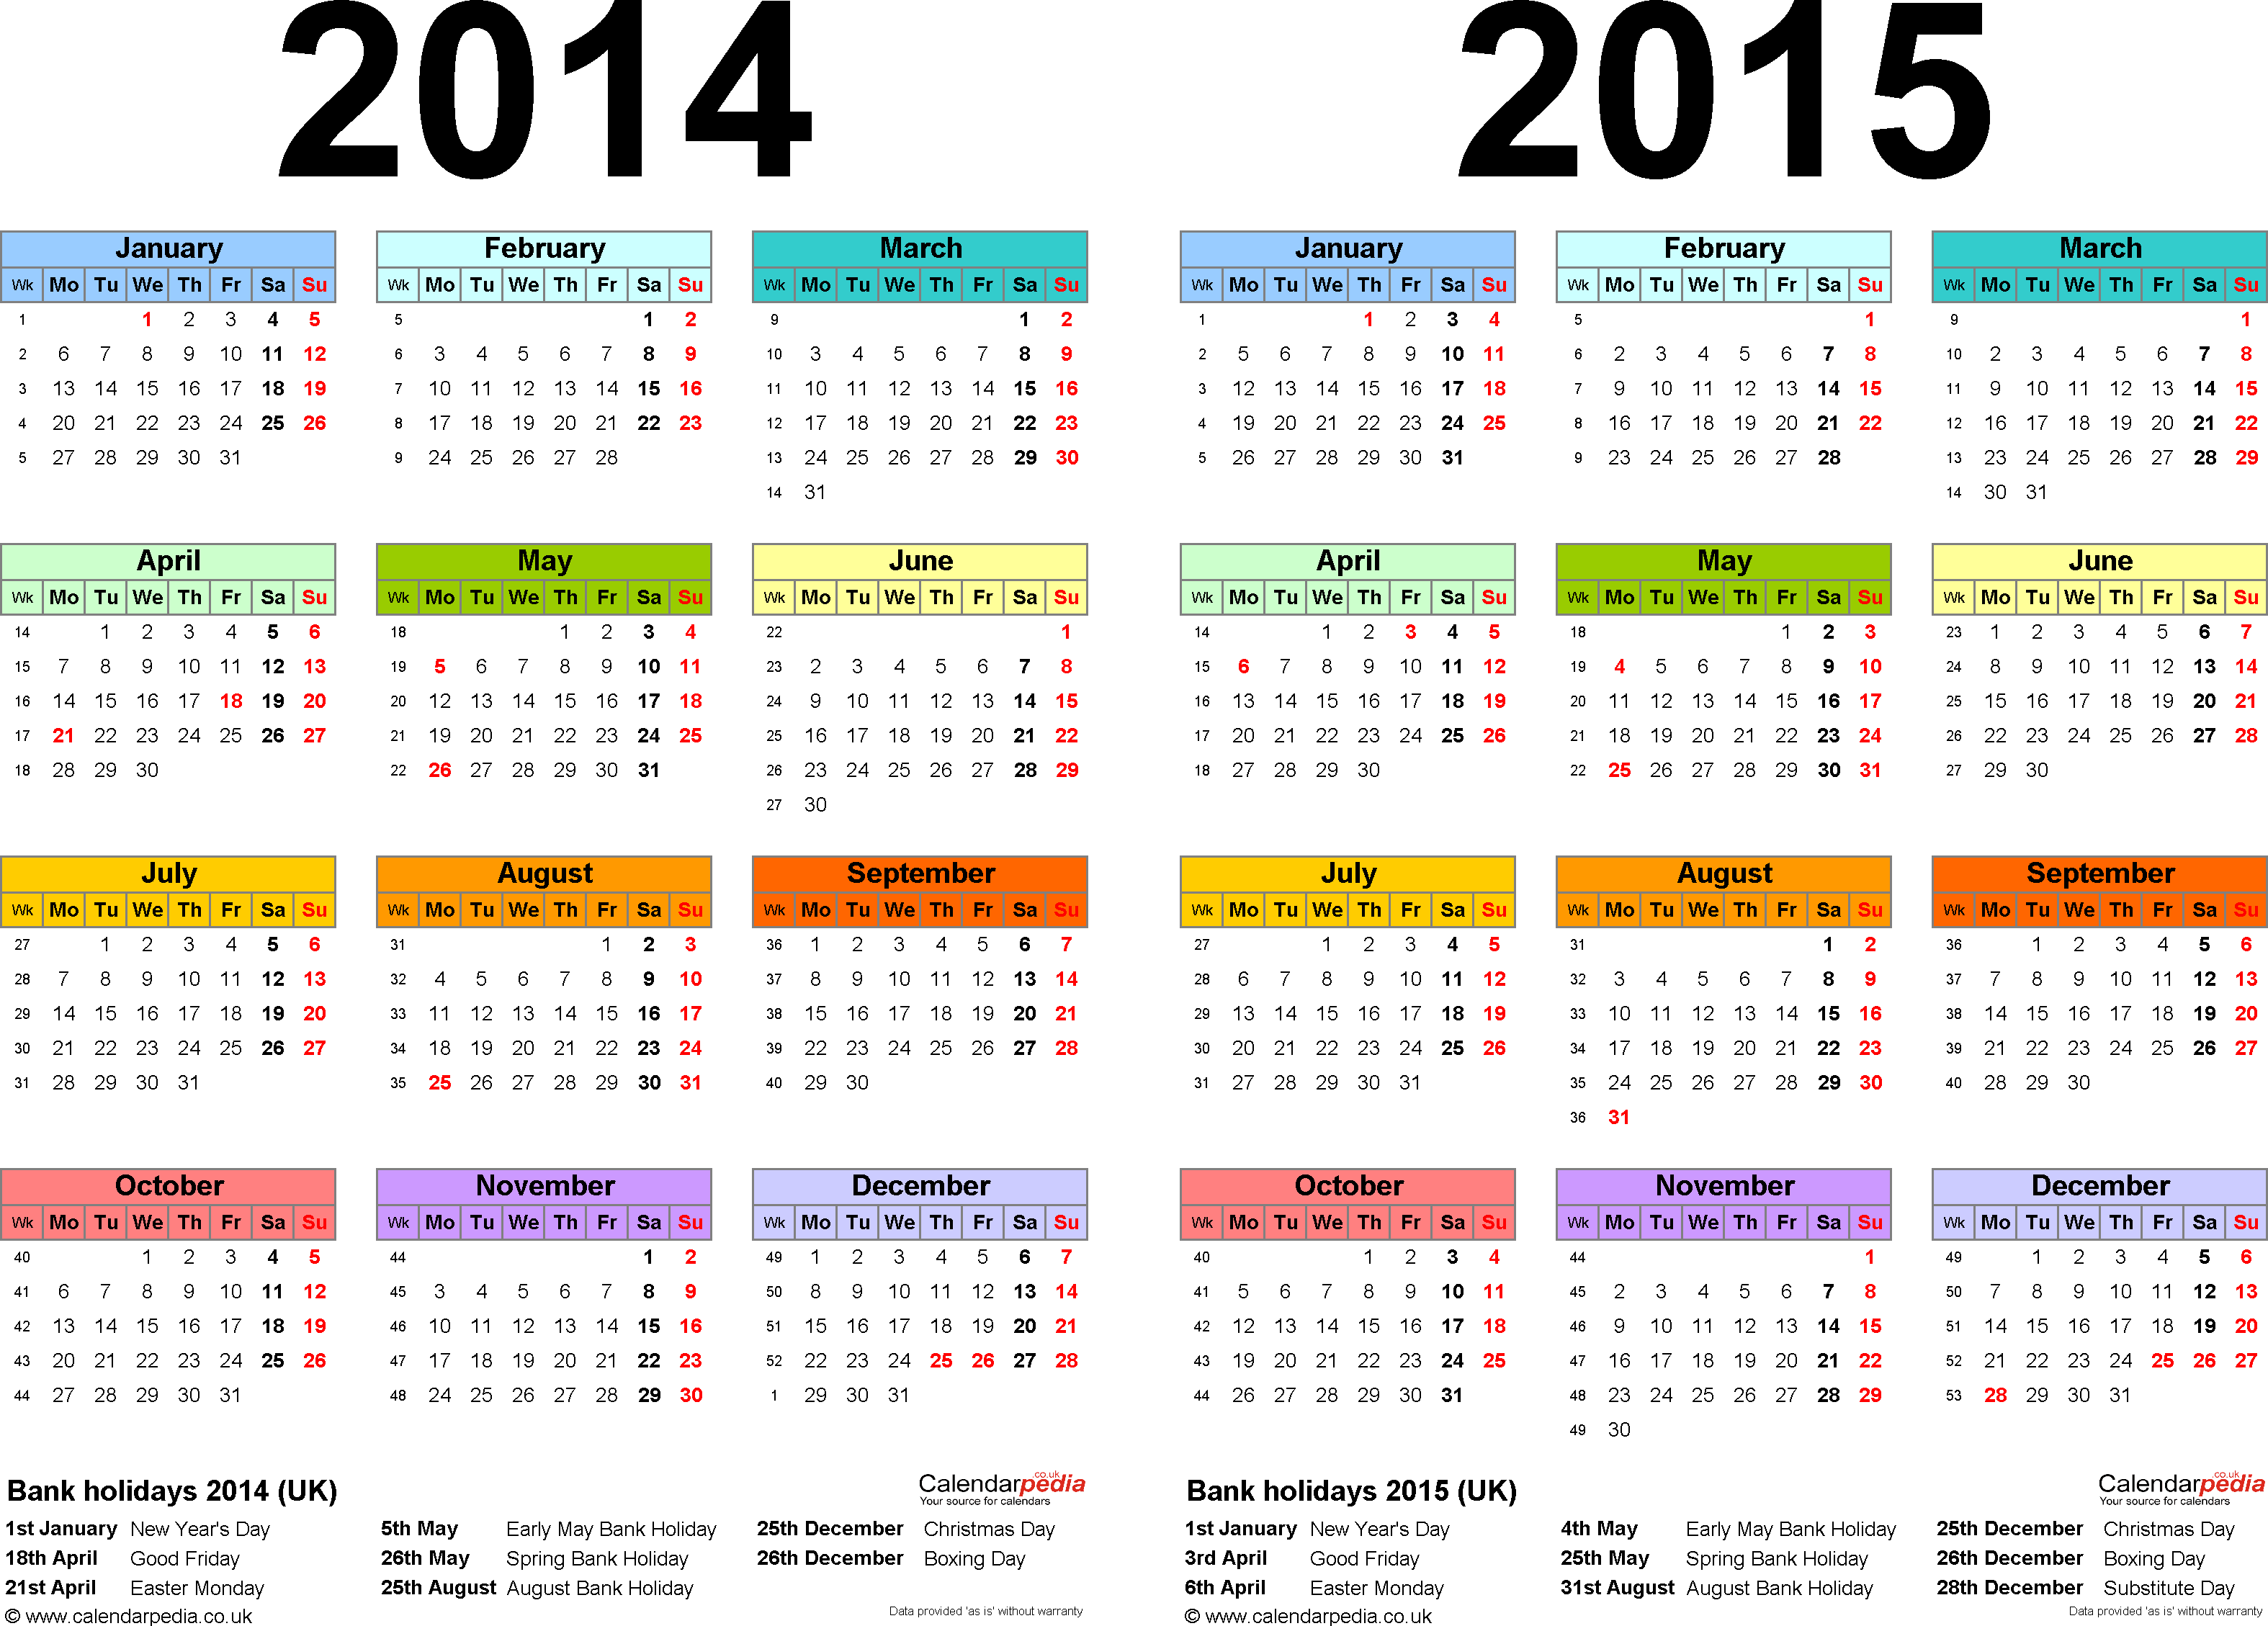 Download Template 1: Excel template for two year calendar 2014/2015 multi-coloured (landscape orientation, 1 page, A4)